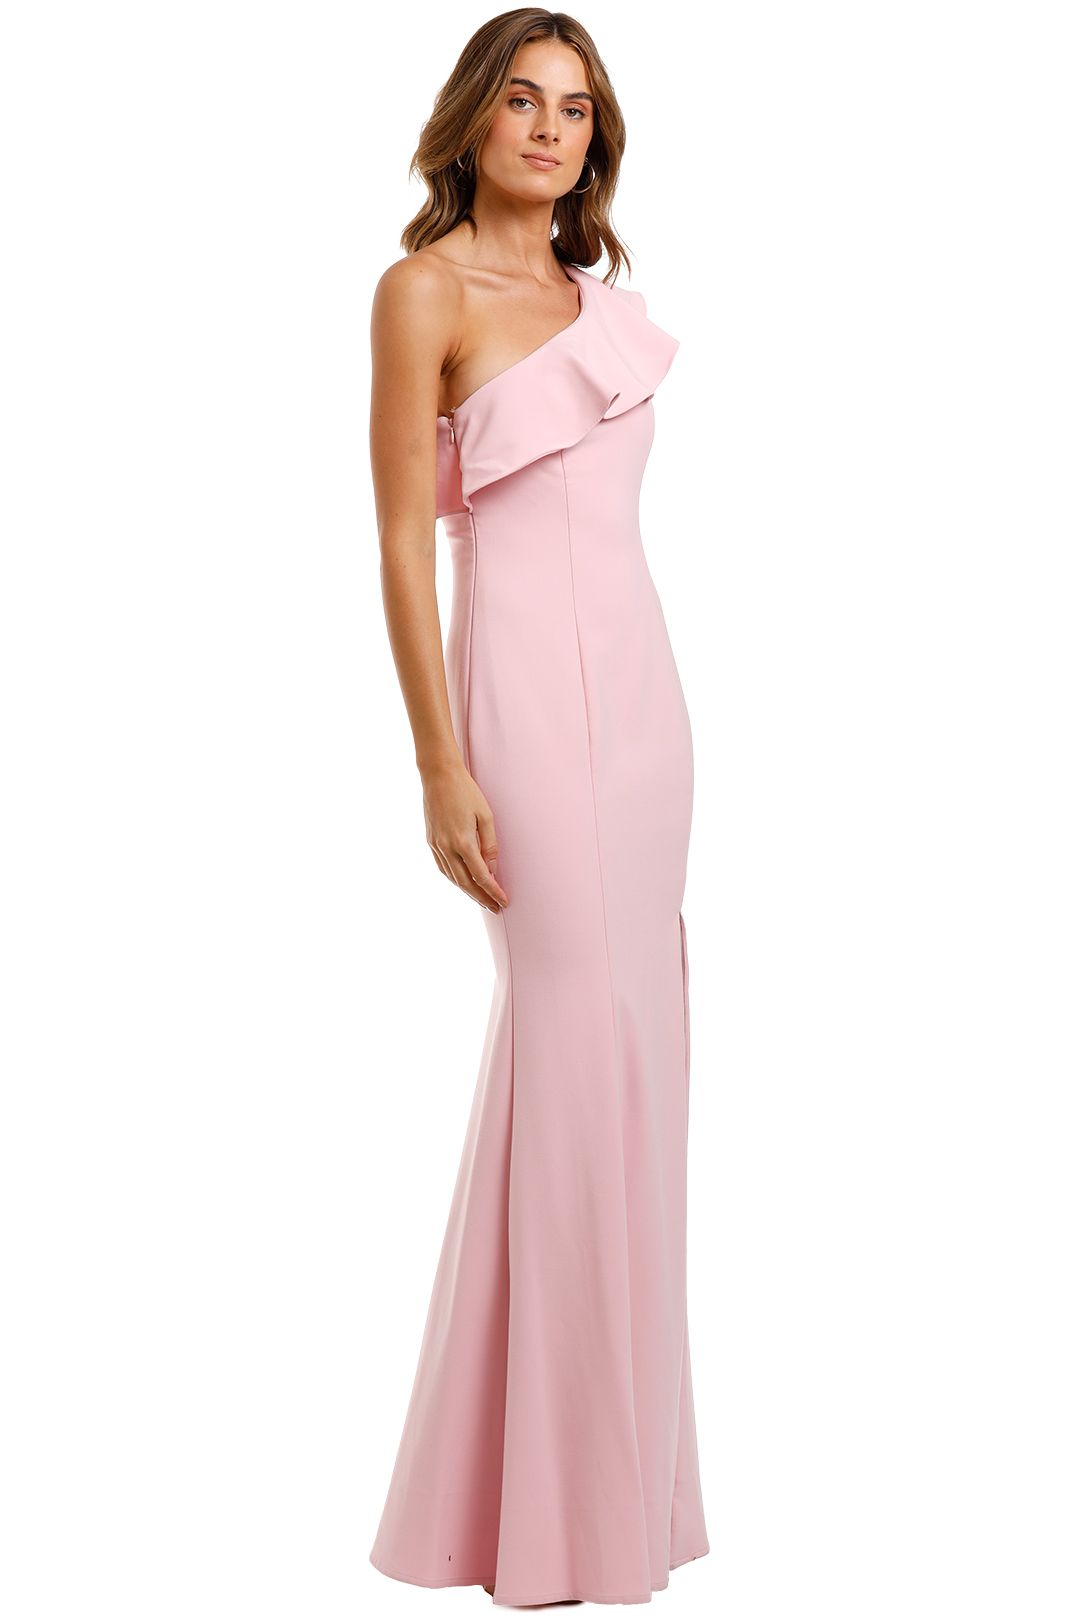 Likely NYC Kane Gown Pink